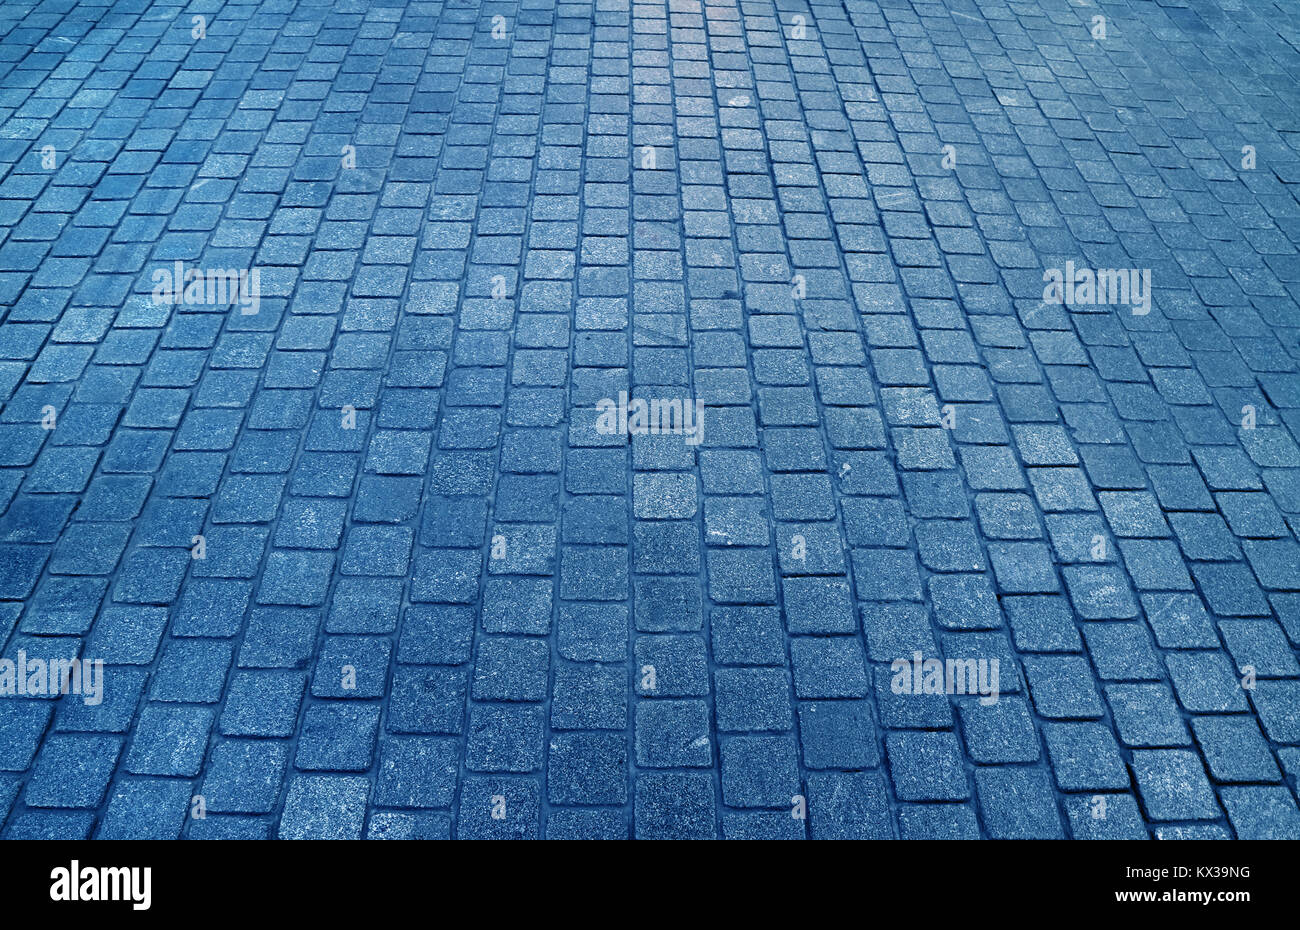 Concrete block paved walkway in blue color, for background, pattern - Stock Image